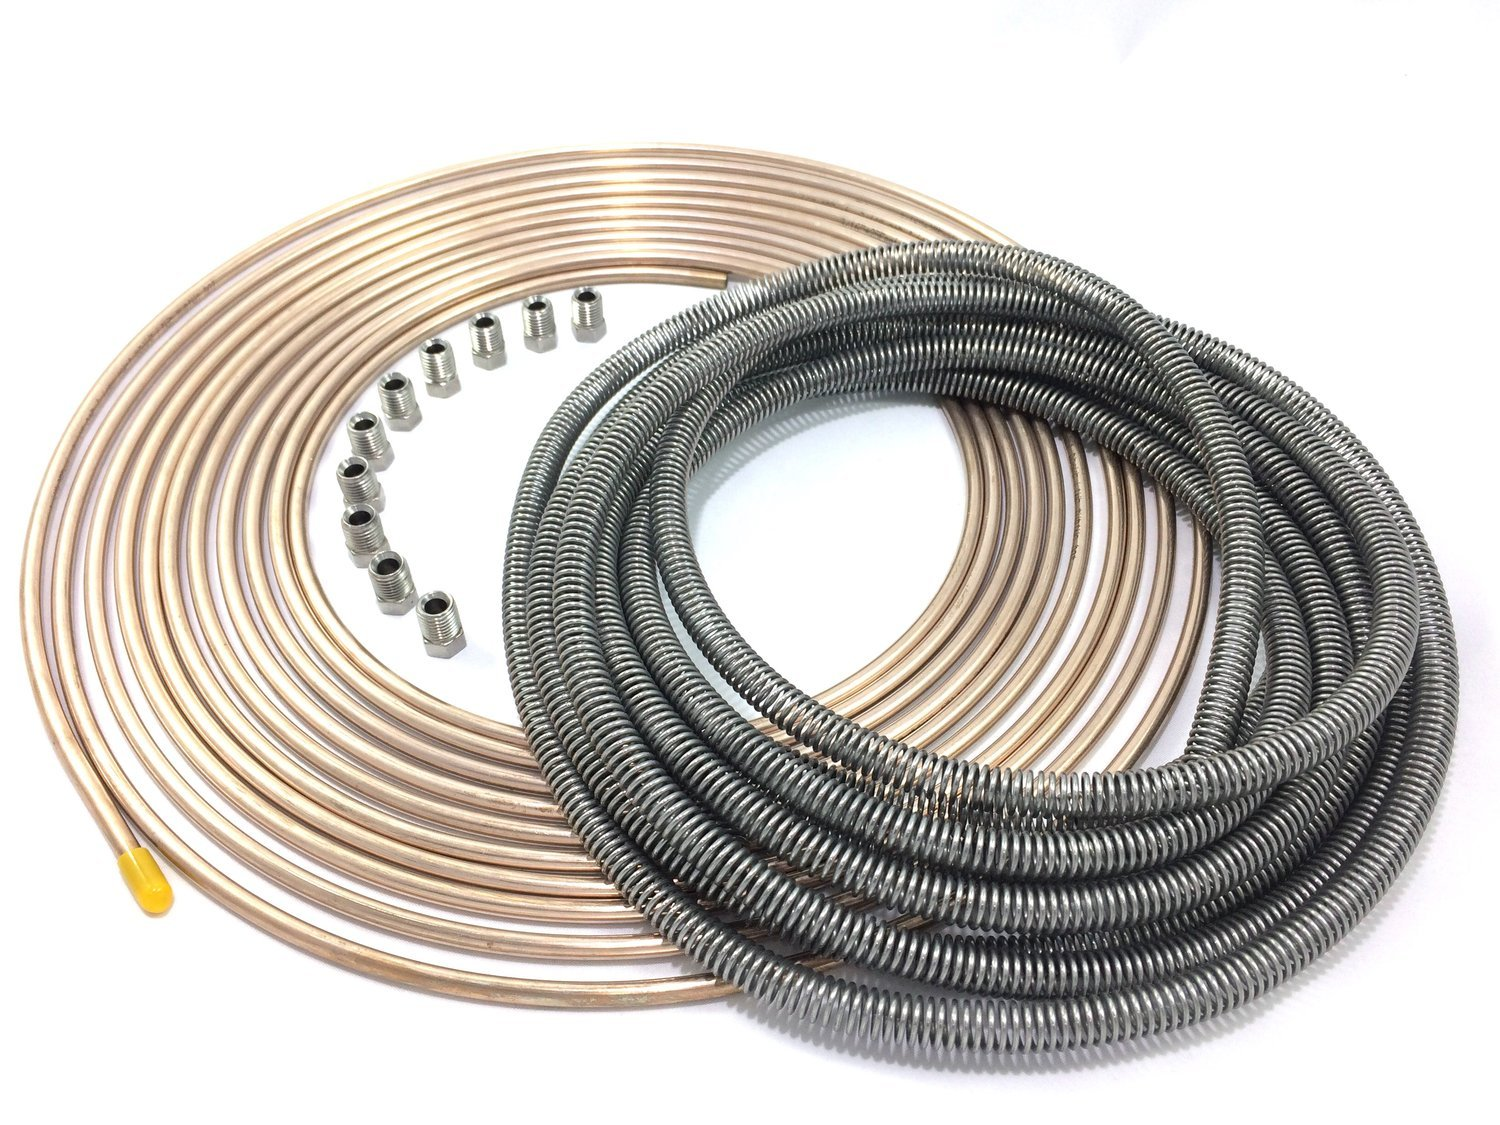 25 Ft 4.75 mm Copper Nickel Tubing with Stainless Armor and Stainless Fittings of 3//16